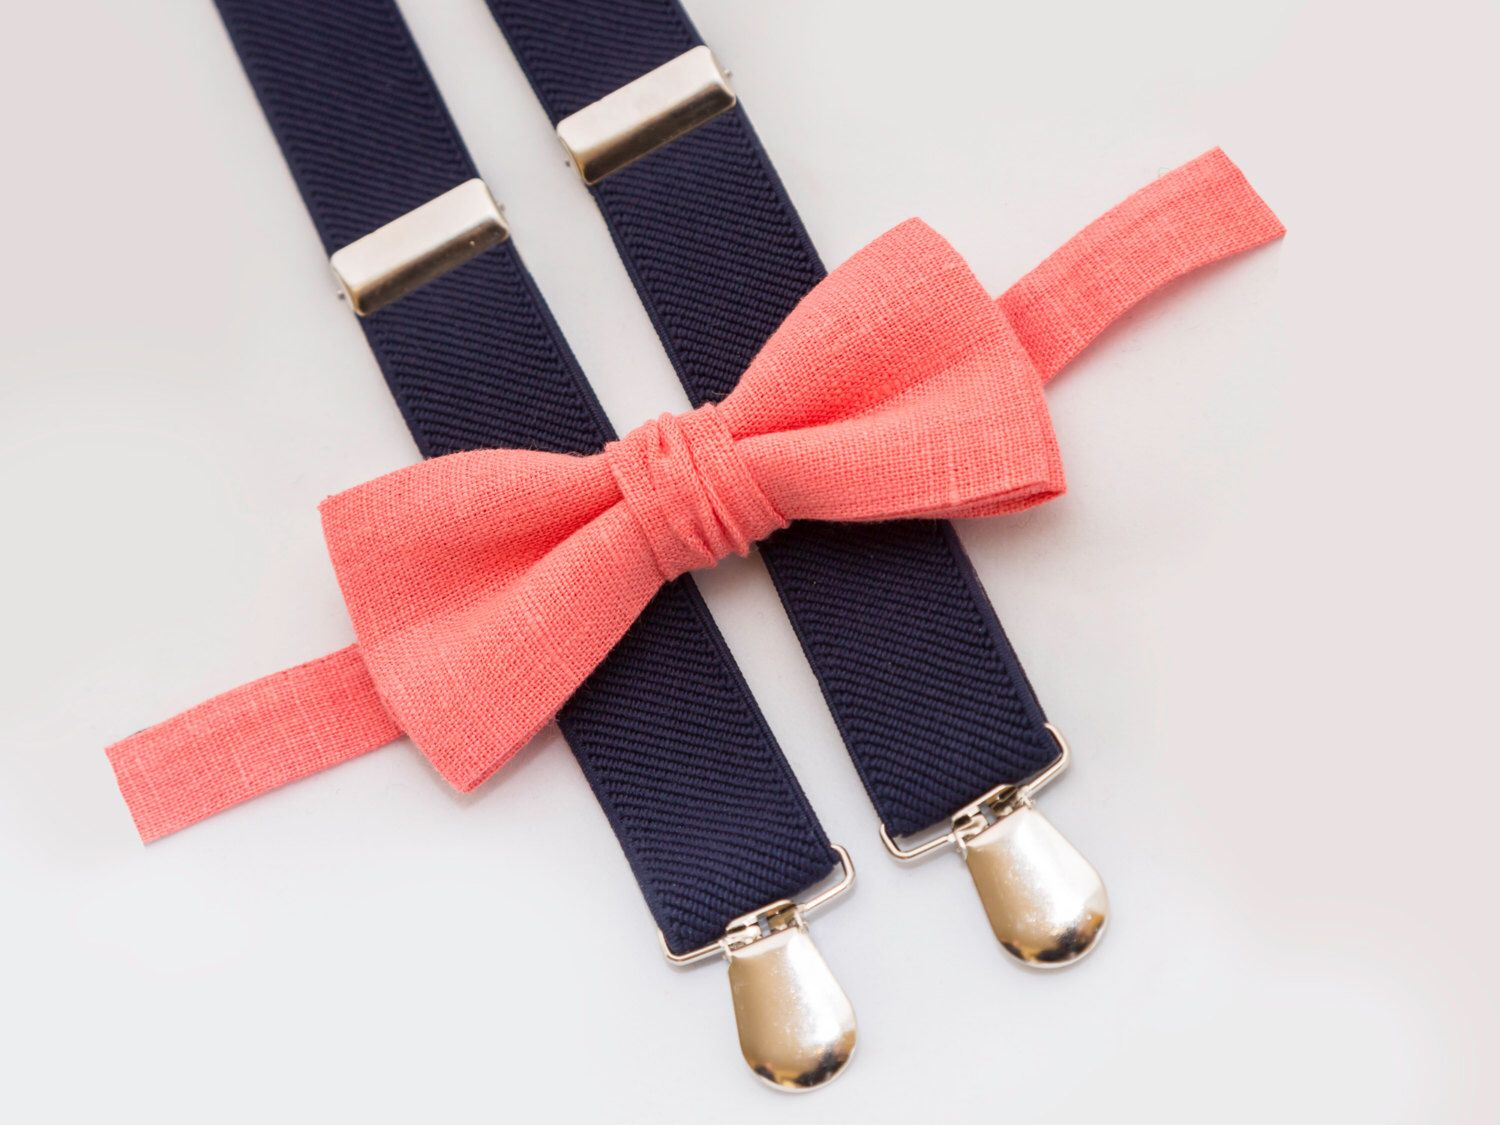 coral bow tie & navy blue suspenders, ring bearer outfit, groomsmen bow tie suspenders by CutieAccessorieStore on Etsy https://www.etsy.com/listing/278877202/coral-bow-tie-navy-blue-suspenders-ring